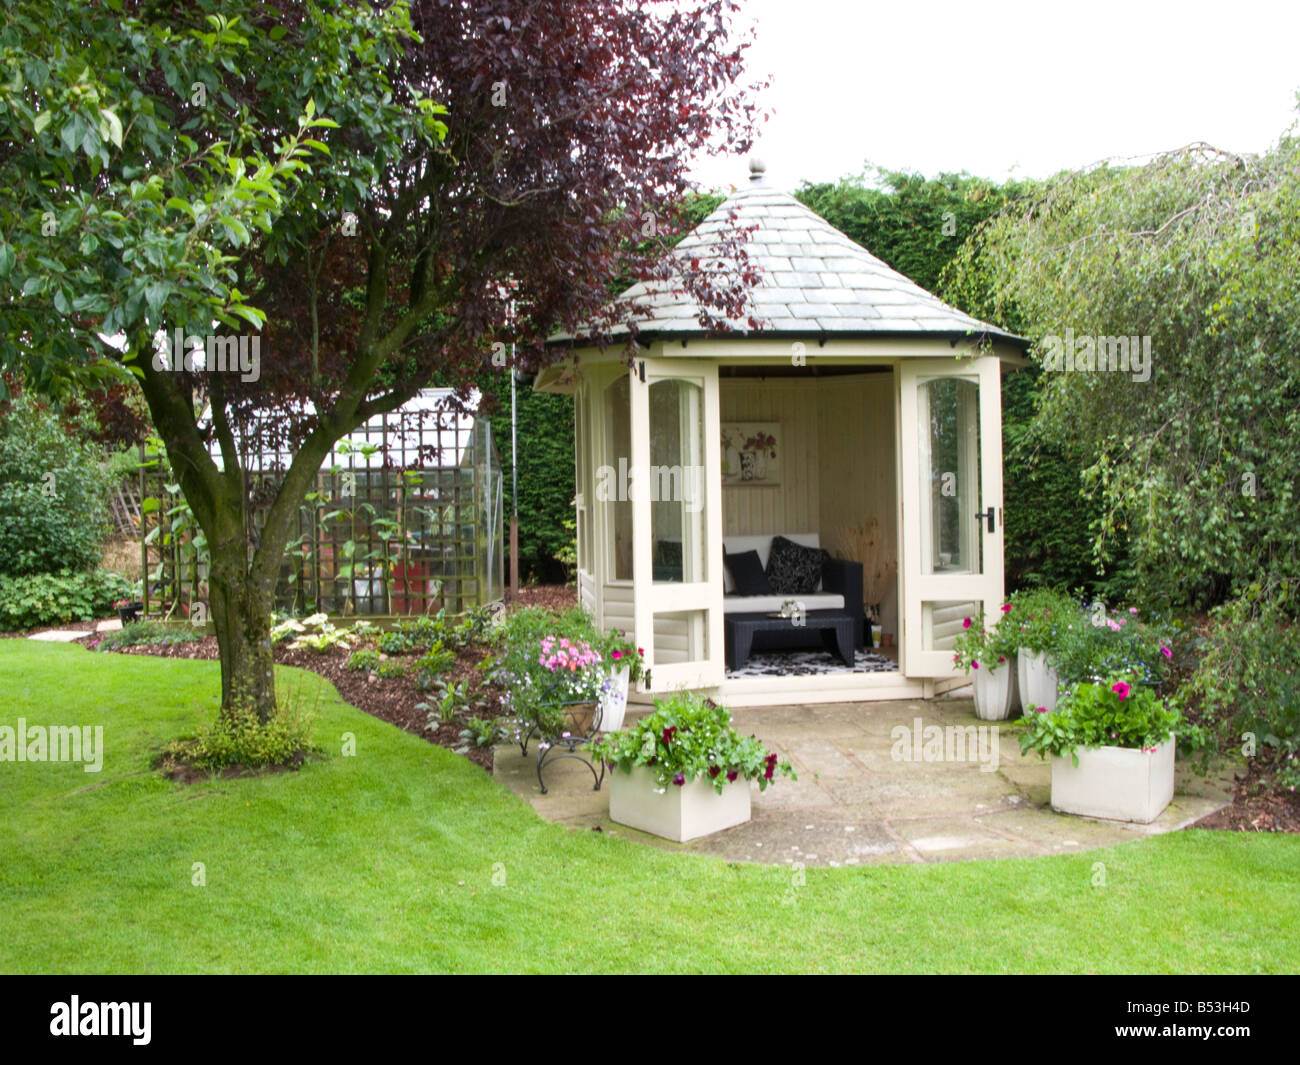 Summer House In A Small Garden Stock Photo 20362957 Alamy